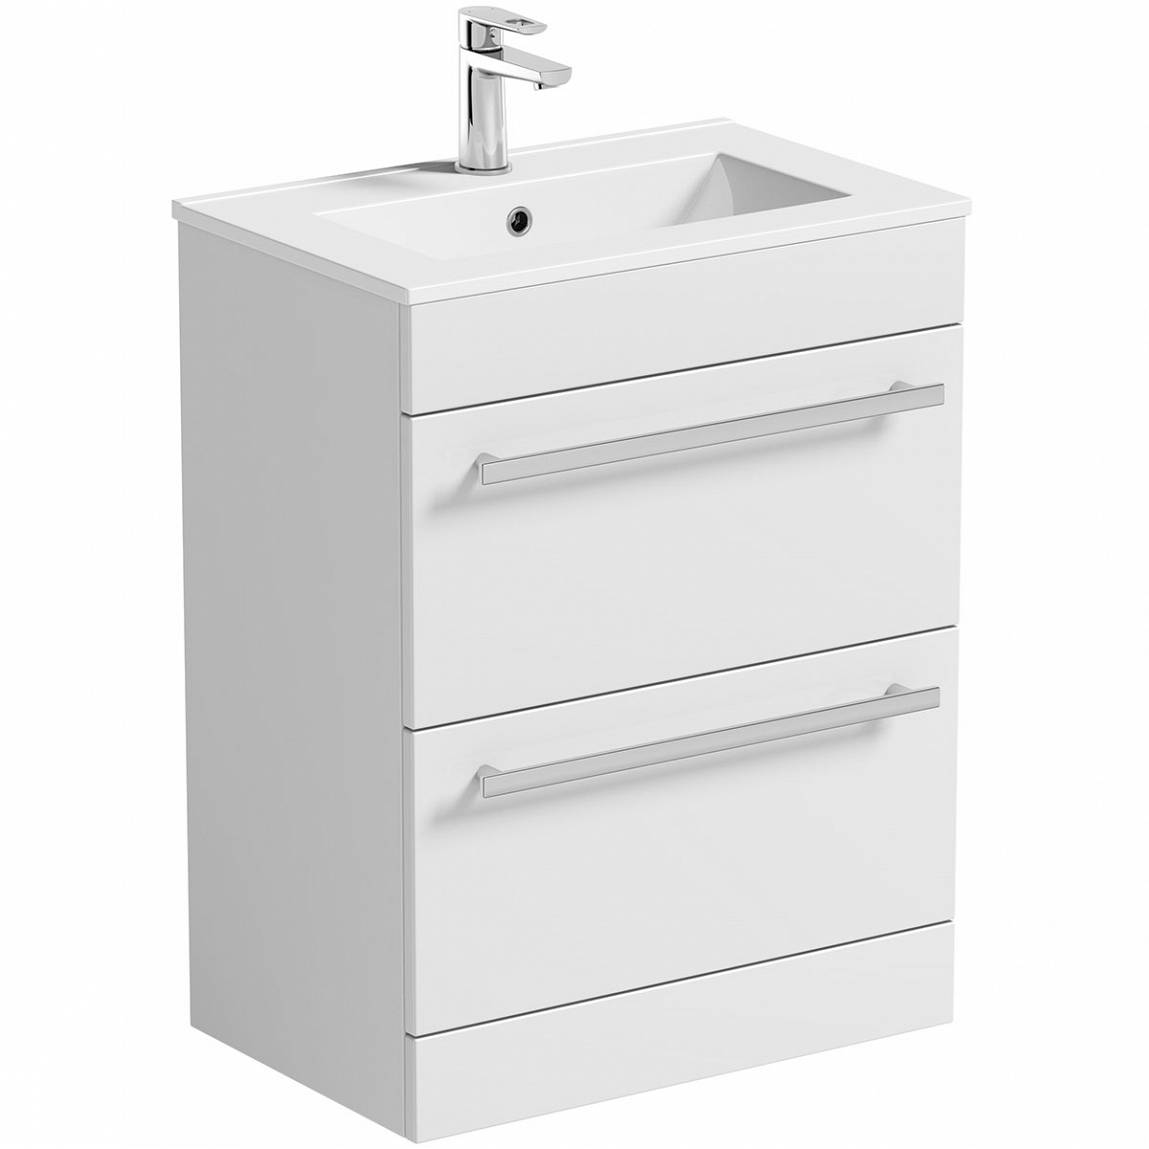 Image of Odessa White Floor Mounted 600 Drawer Unit & Basin